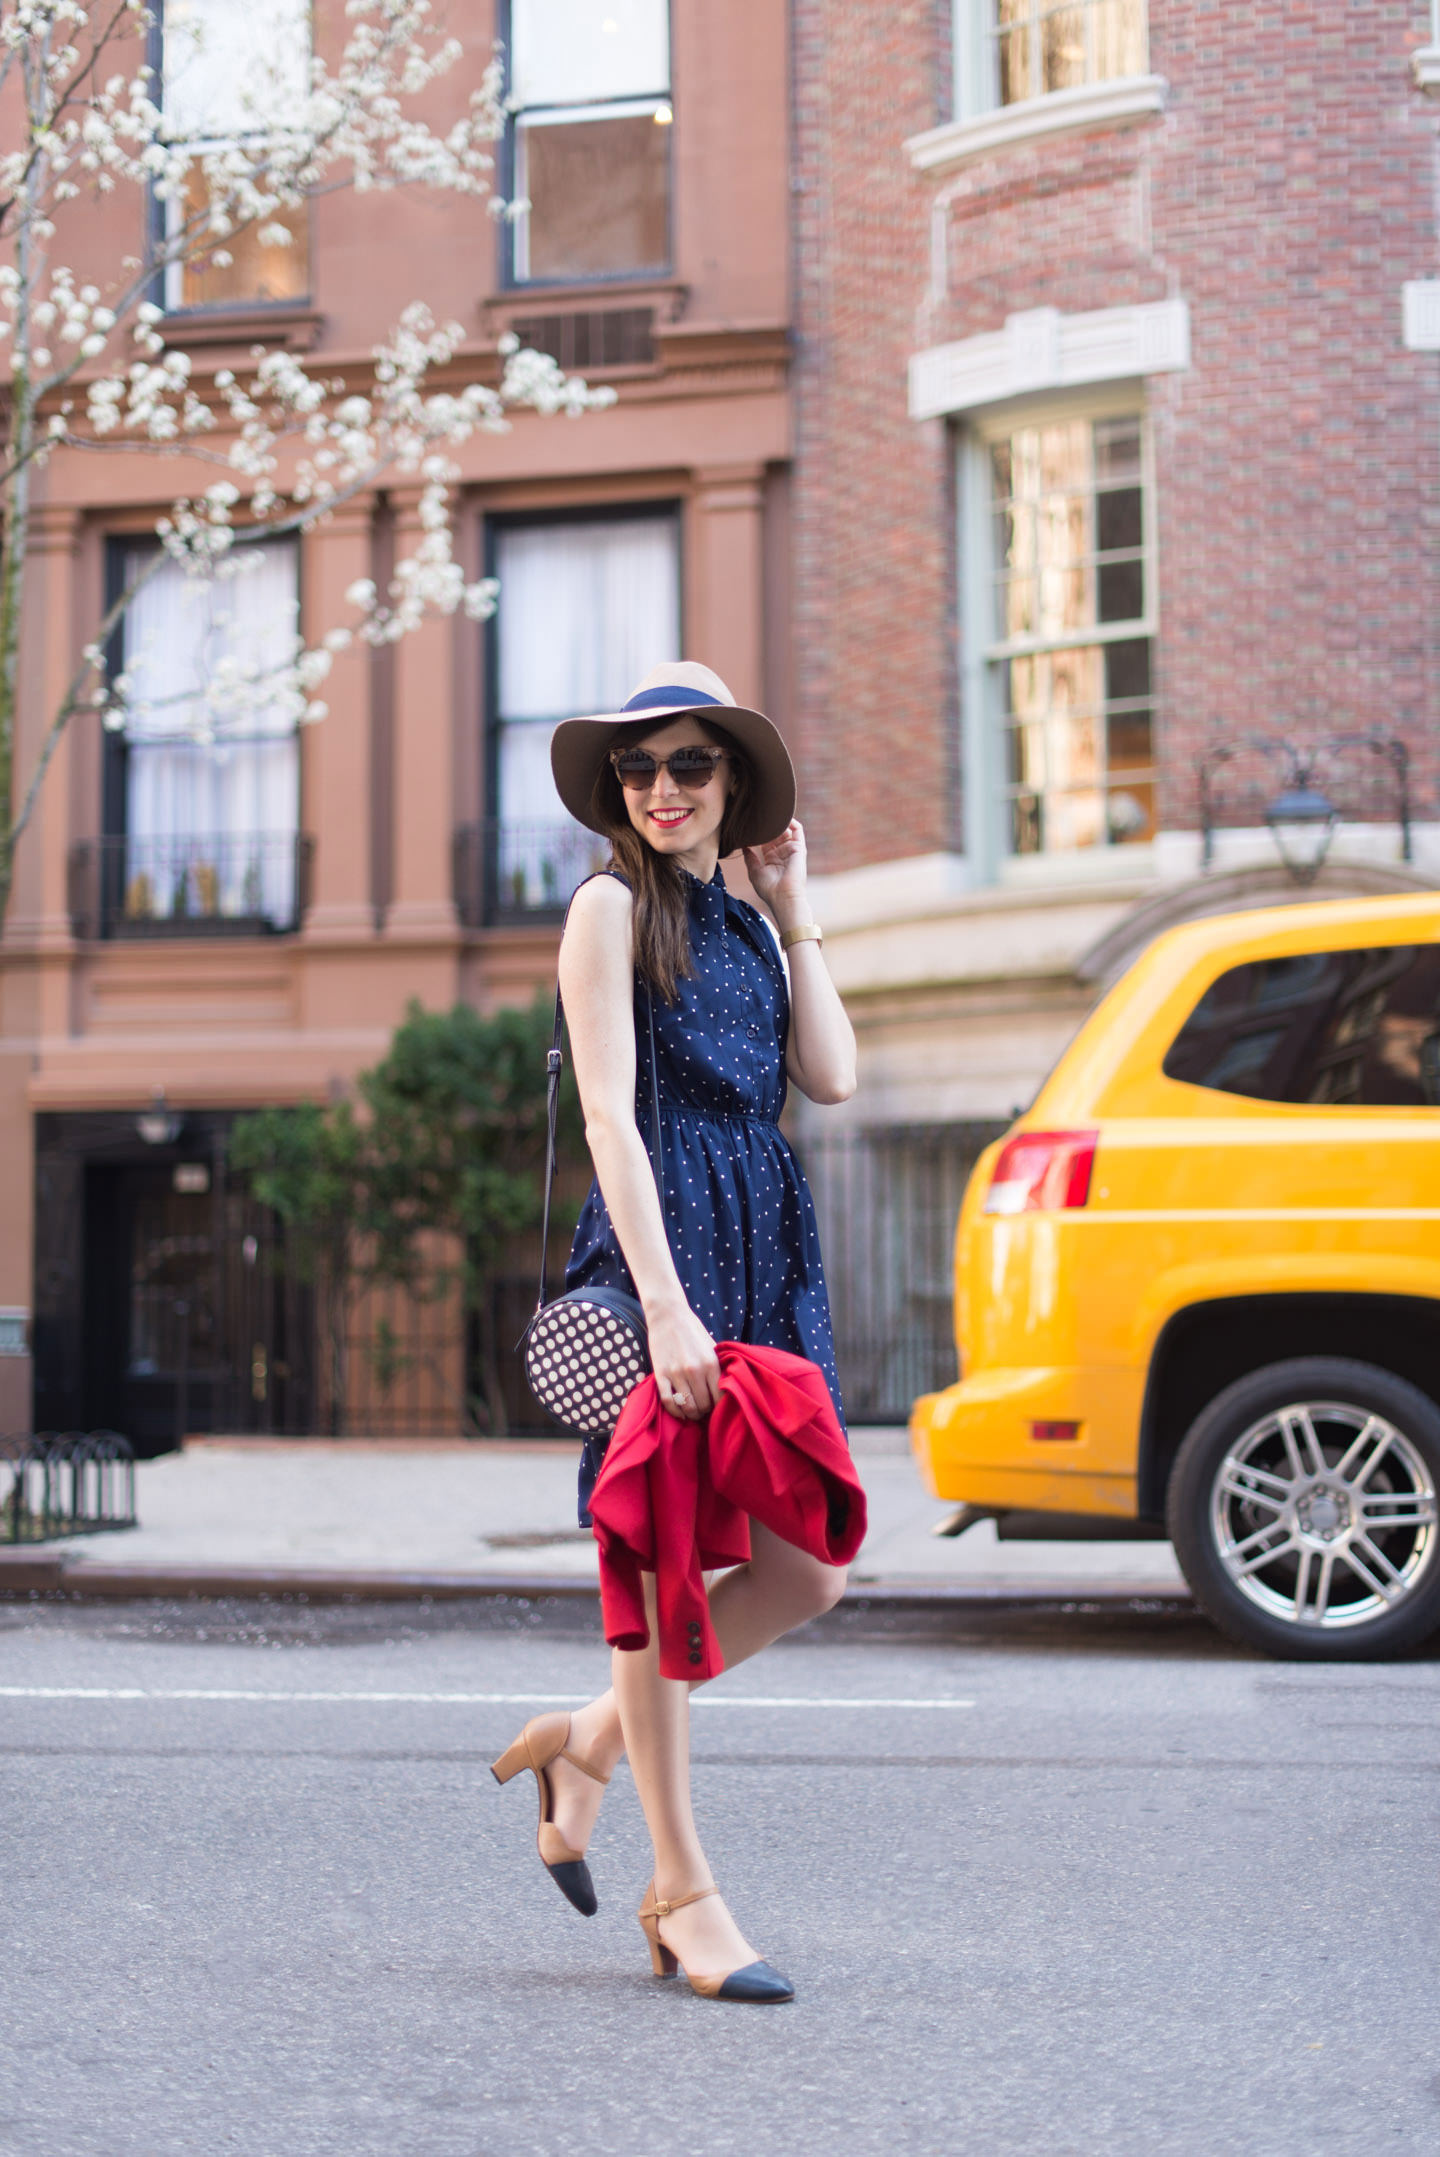 Blog-Mode-And-The-City-Lifestyle-New-York-Air-France-Jean-Imbert02-6